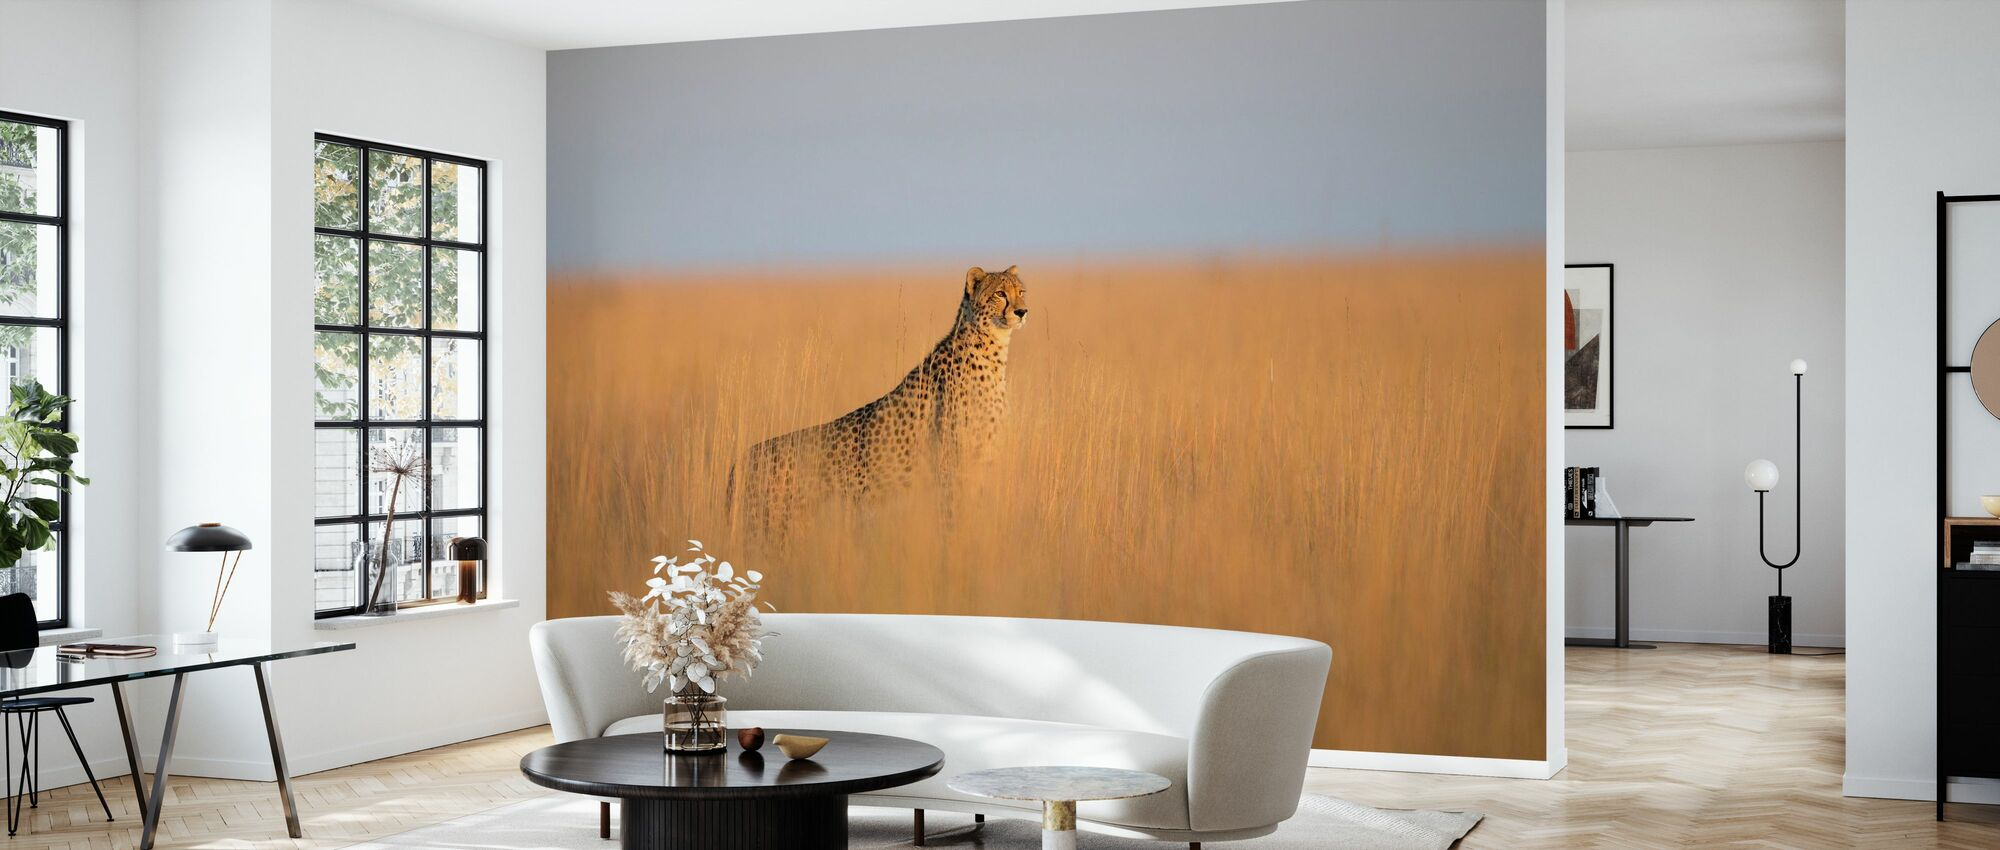 Cheetah in Long Grass - Wallpaper - Living Room